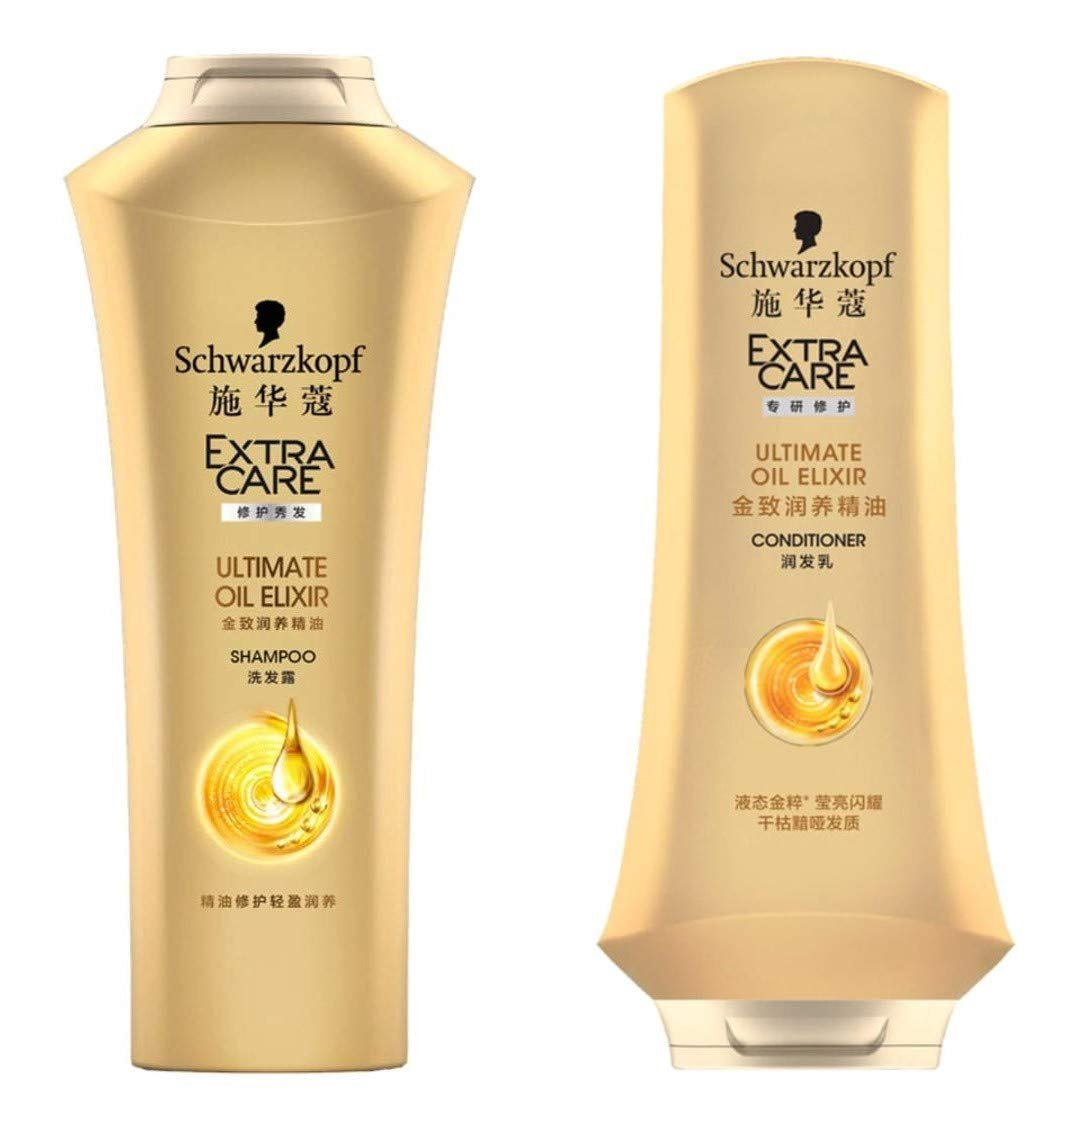 EXTRA CARE Ultimate Oil Elixir Shampoo and Conditioner 400 ml.